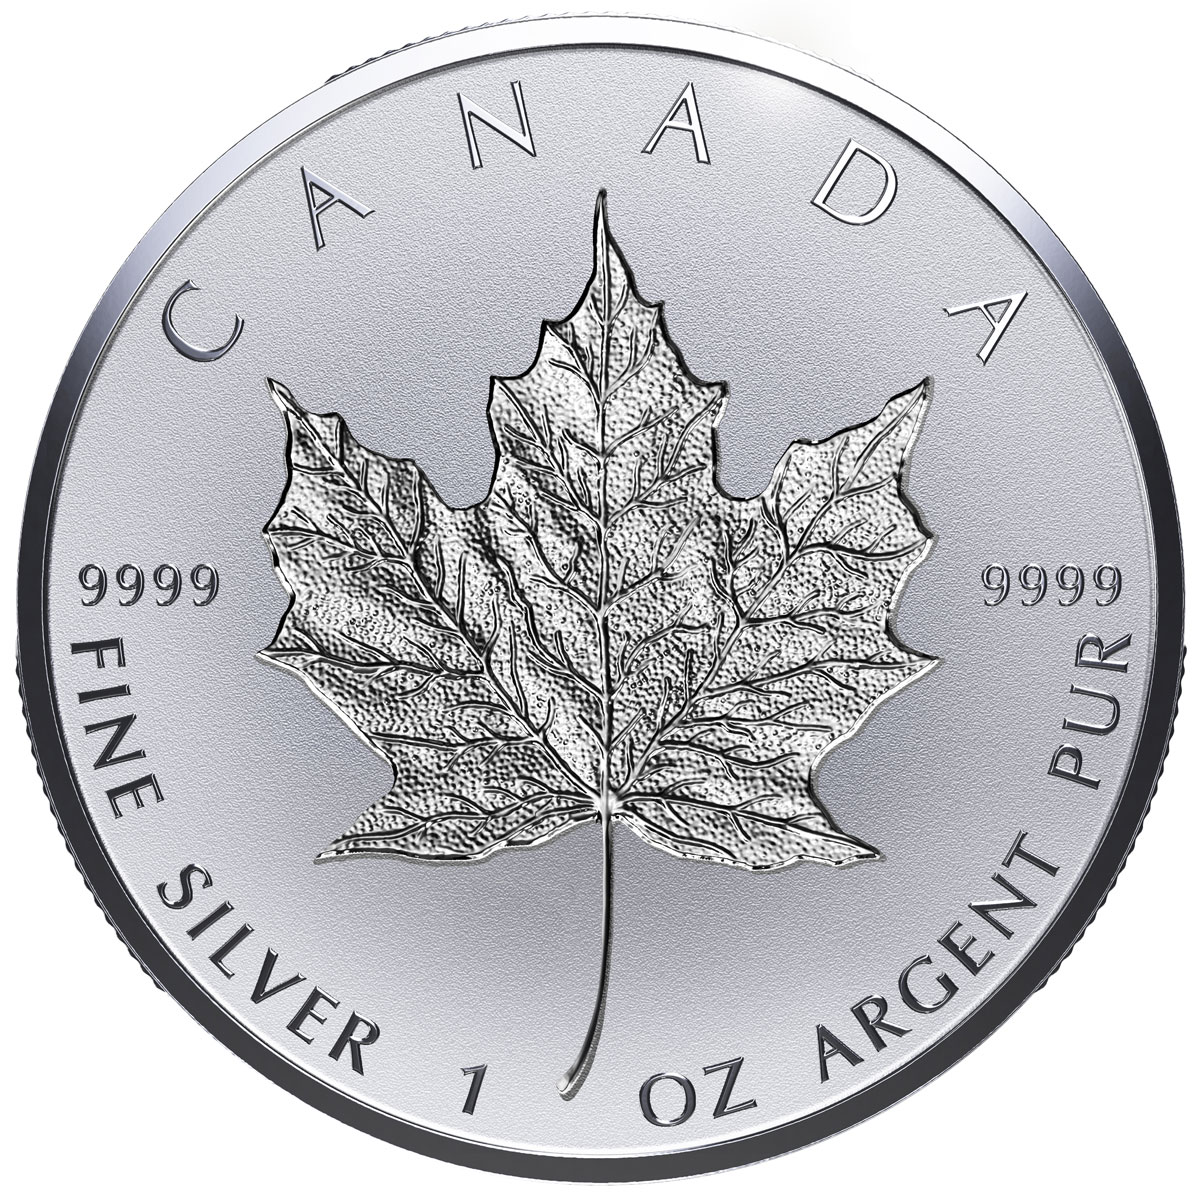 1 Oz Canadian Maple Leaf Silver Coin Price